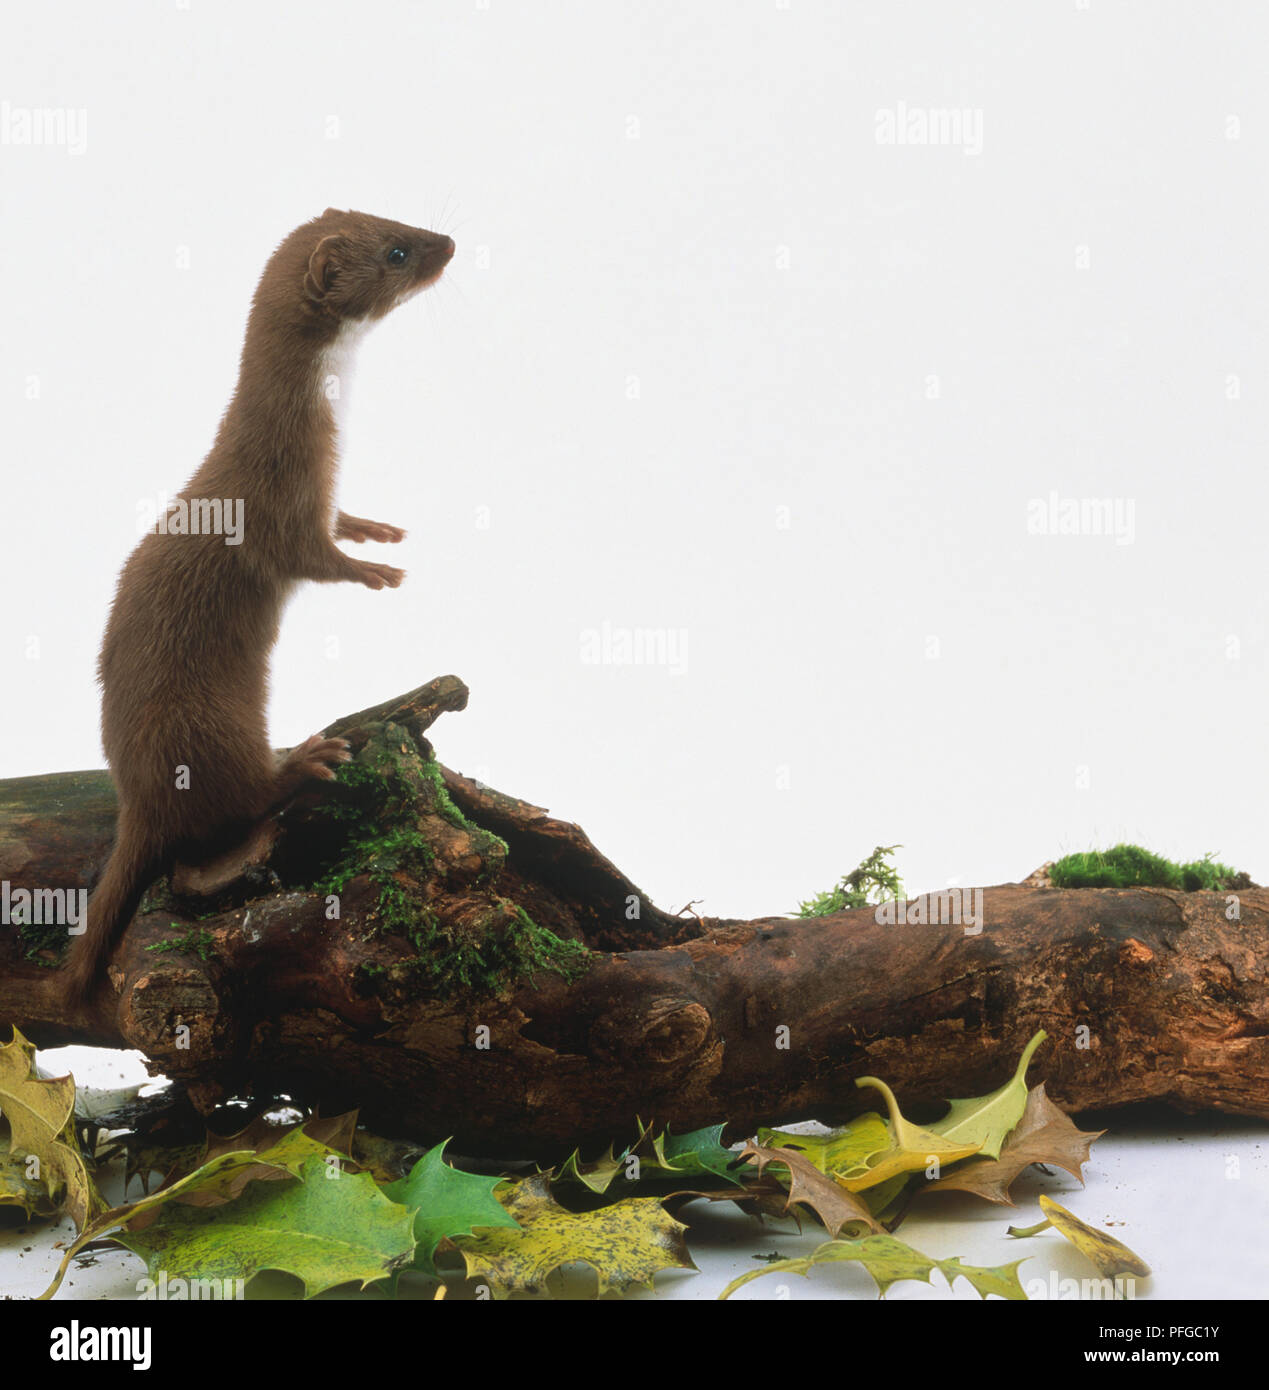 Mustela nivalis (Weasel, least weasel). Family Mustelidae. Weasel standing upright on moss-covered log - Stock Image